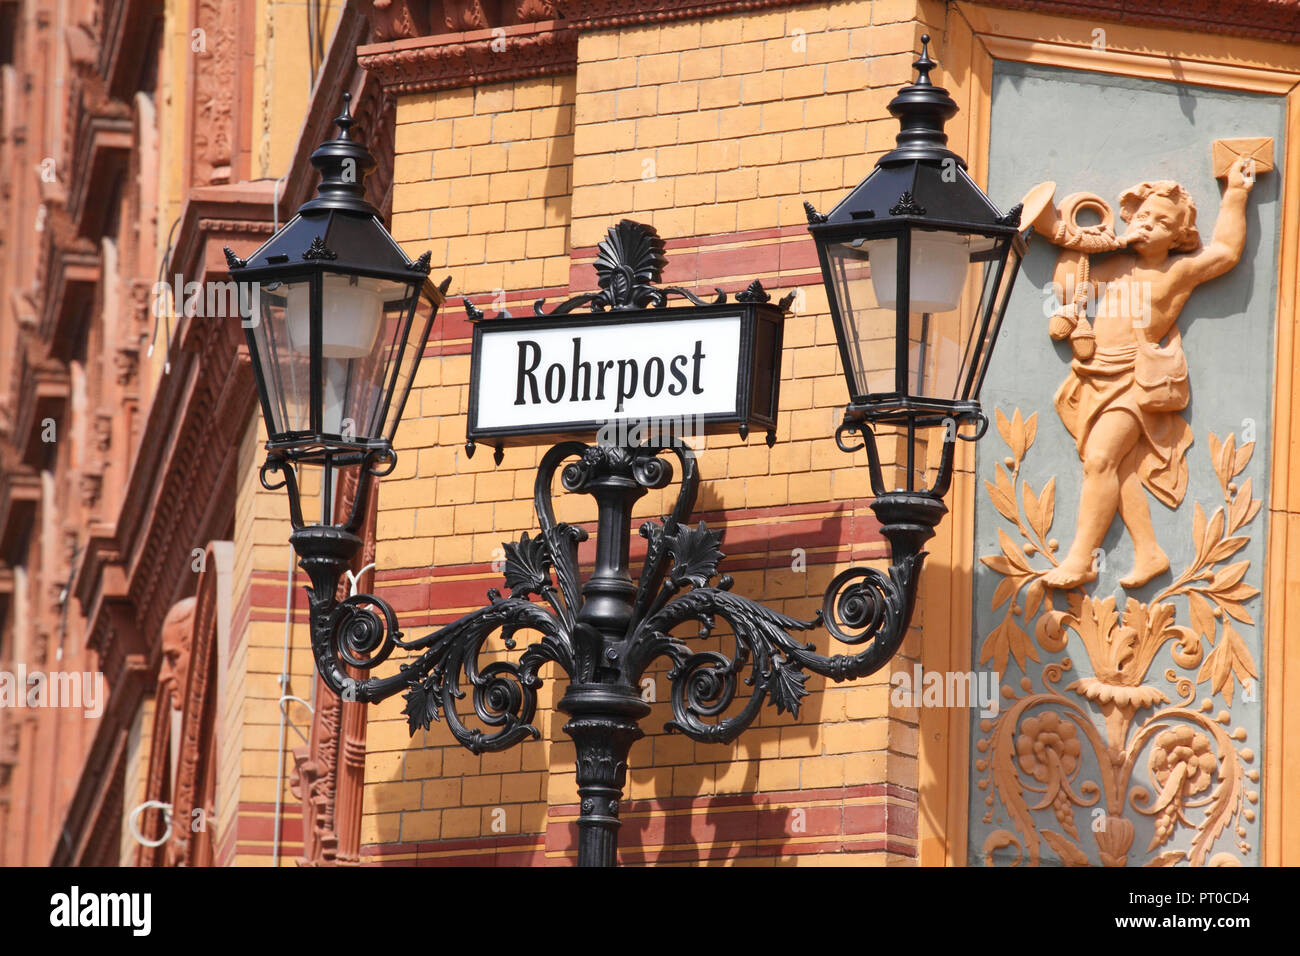 Old sign 'Rohrpost' with old street lamp at the former Postfuhramt in Oranienburger Straße, Berlin, Germany, Europe - Stock Image